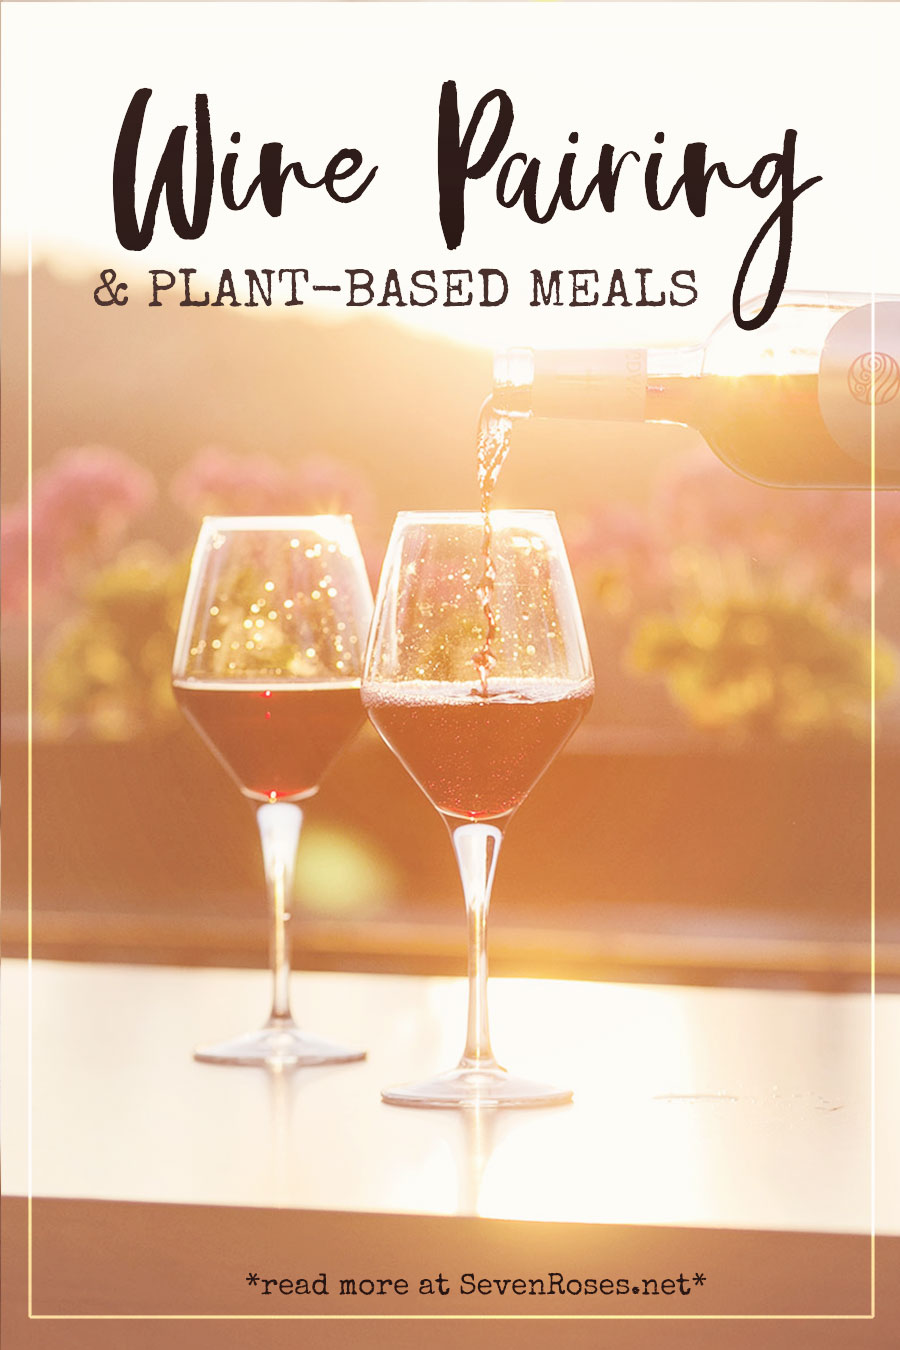 Wine pairing and plant-based meals